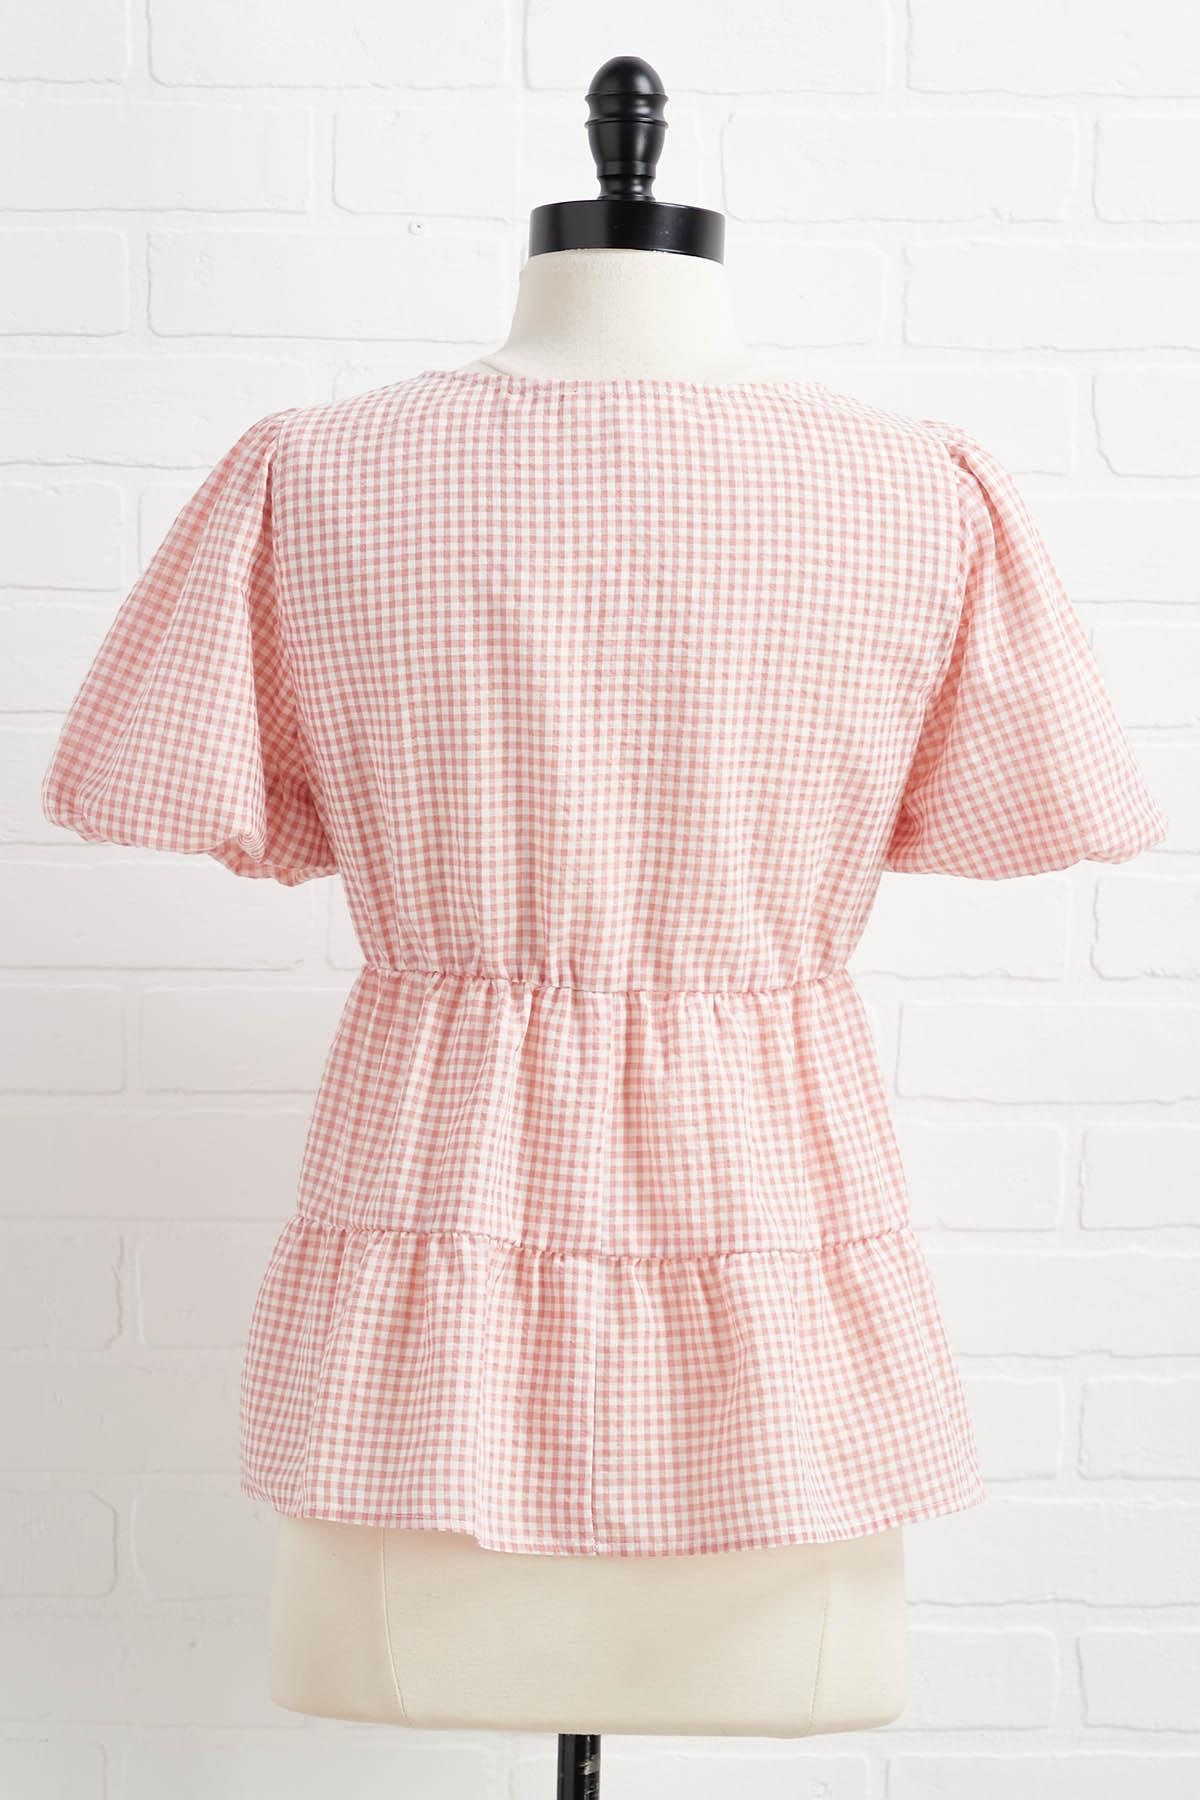 Southern Sweetie Top